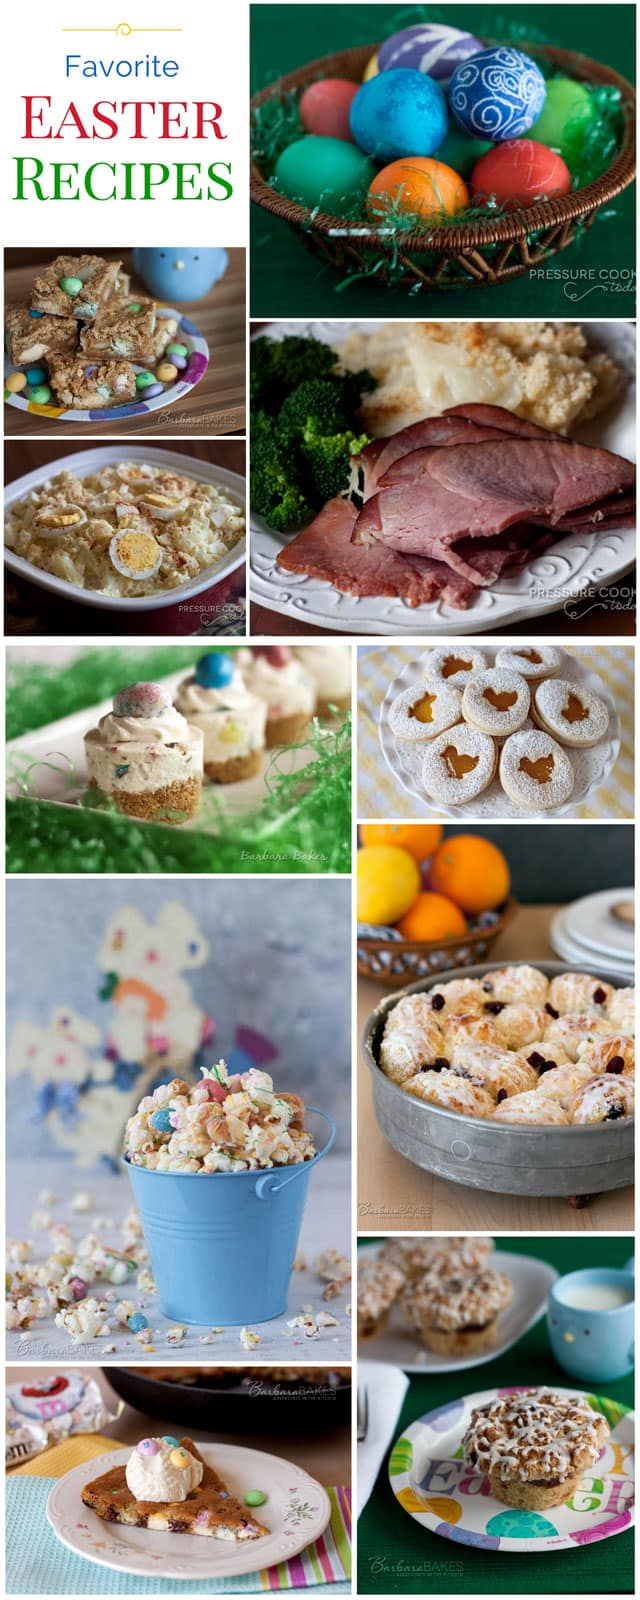 Favorite-Easter-Recipes-Collage-2-Barbara-Bakes